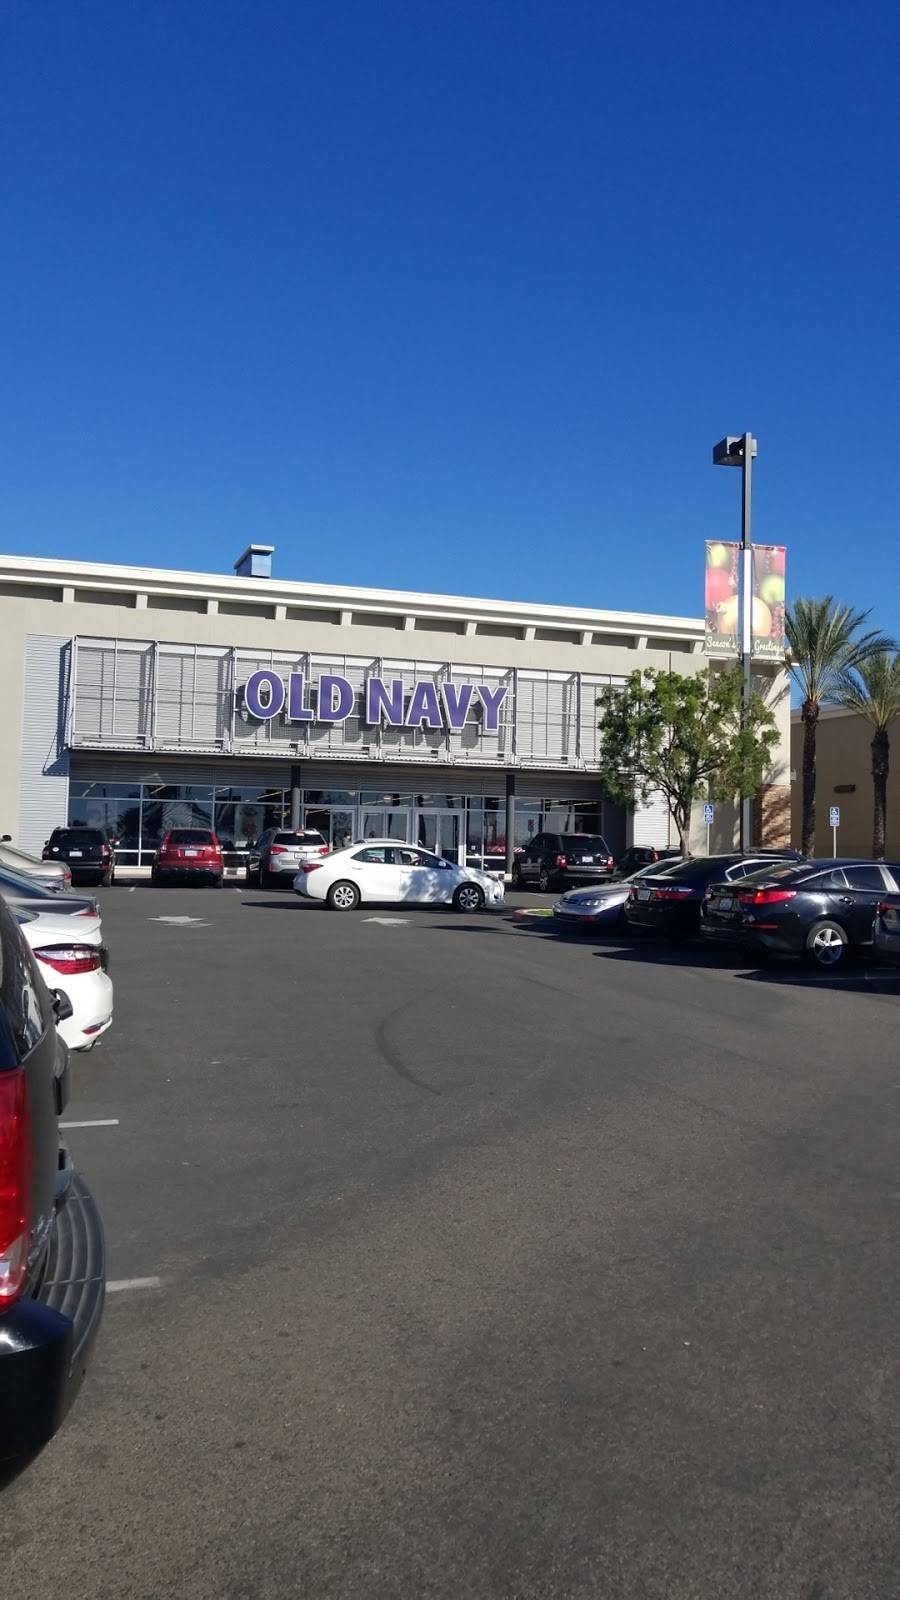 Old Navy - with Curbside Pickup - clothing store    Photo 1 of 10   Address: 2650 Canyon Springs Pkwy, Riverside, CA 92507, USA   Phone: (951) 653-5406